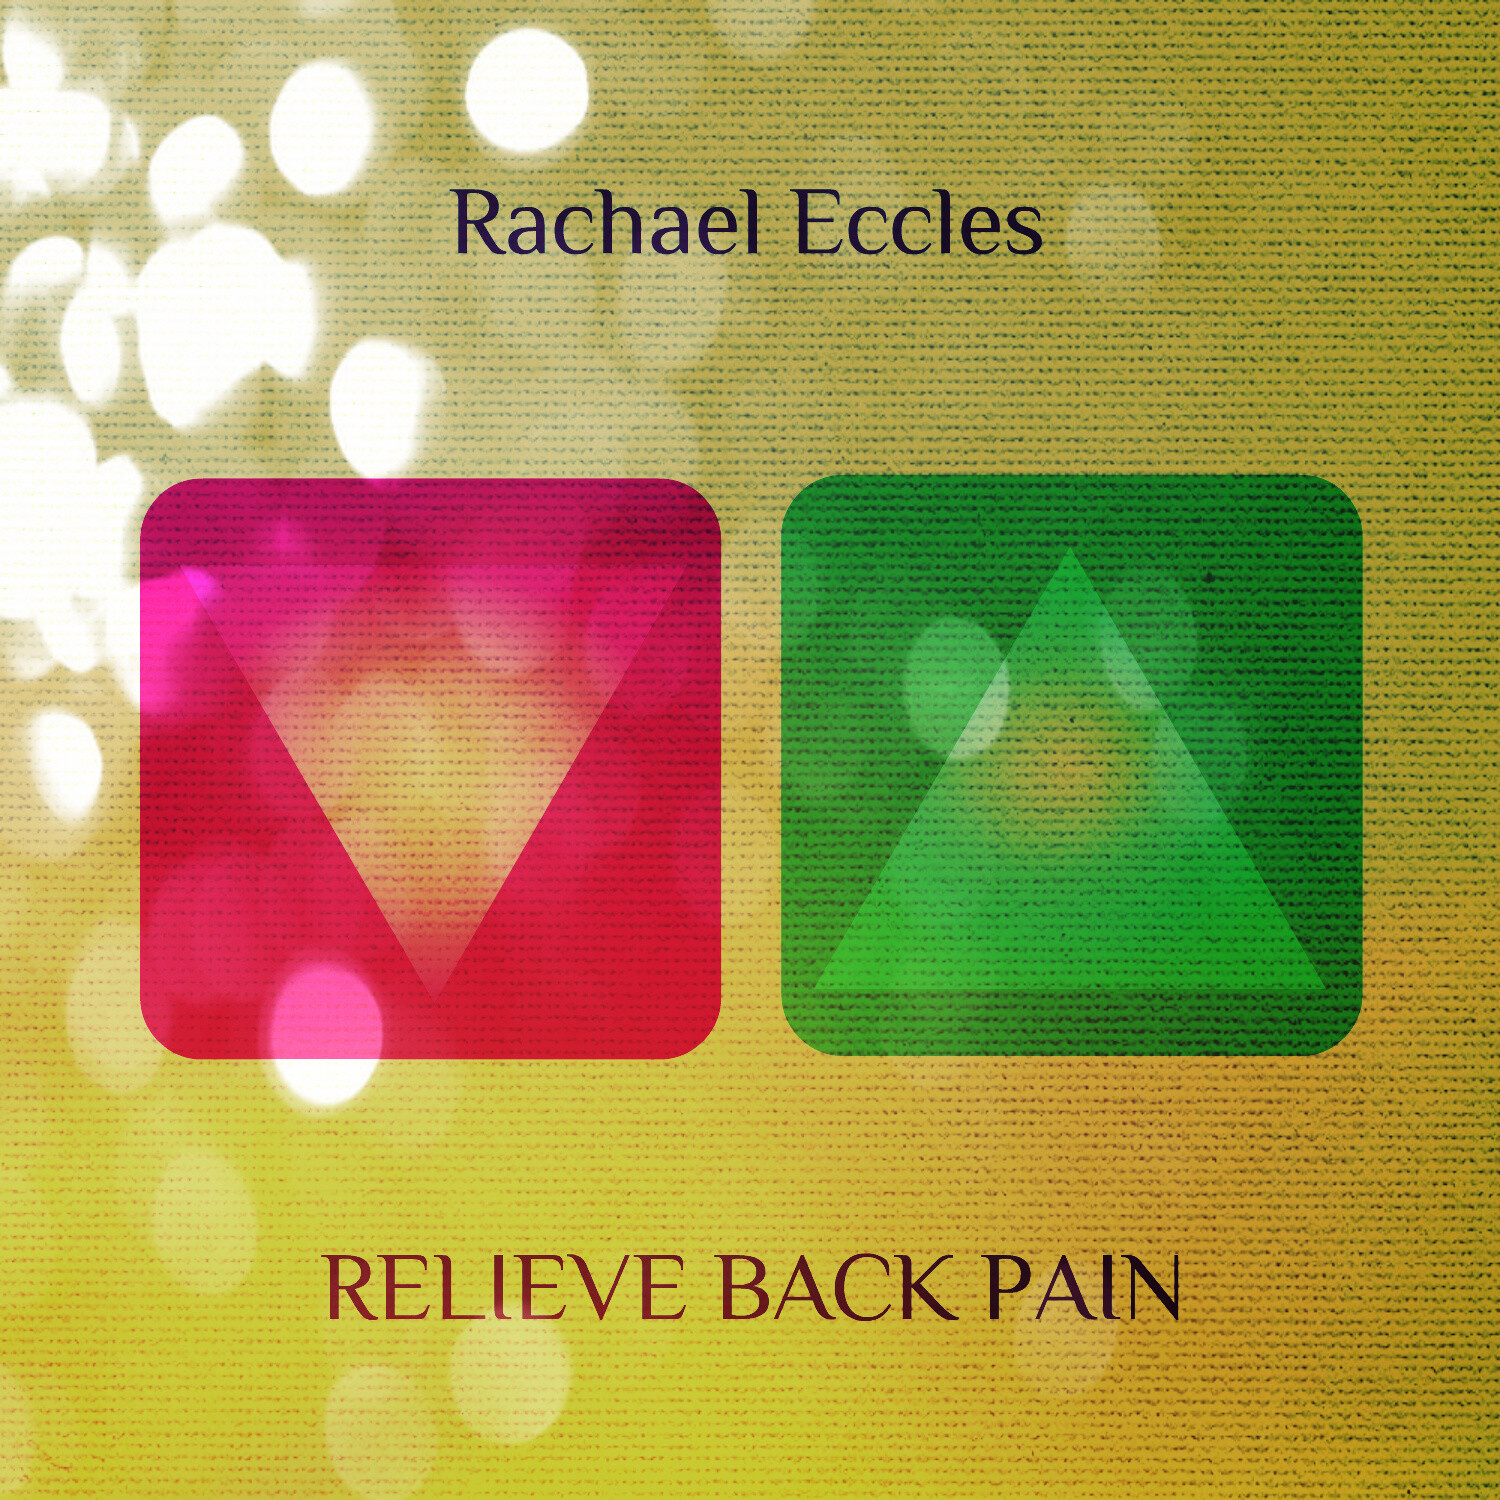 Relieve Back Pain, Pain Relief, Pain Management Hypnotherapy Self Hypnosis MP3 Download or CD